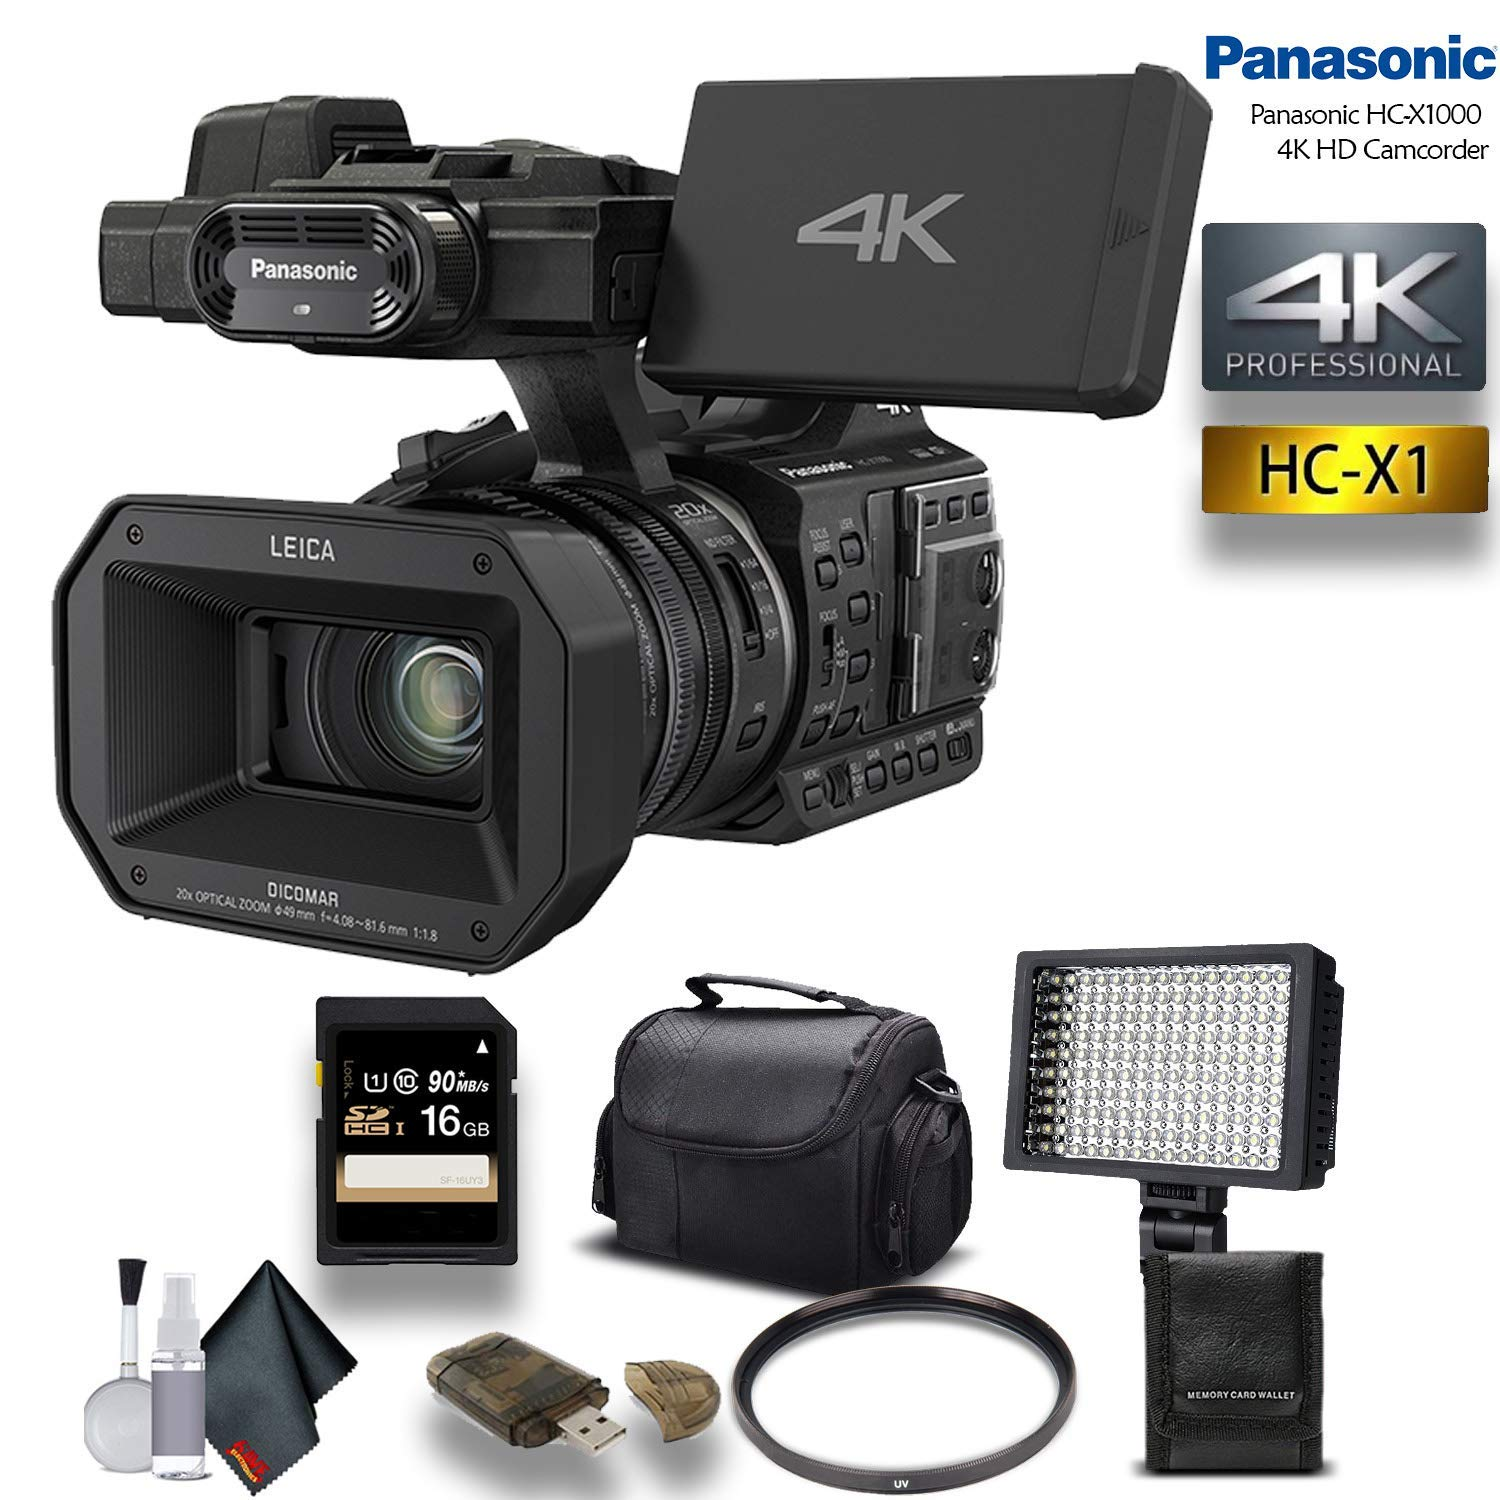 Panasonic HC-X1000 4K DCI/Ultra HD/Full HD Camcorder with 16GB Memory Card, LED Light, Case and More. - Starter Bundle by Panasonic